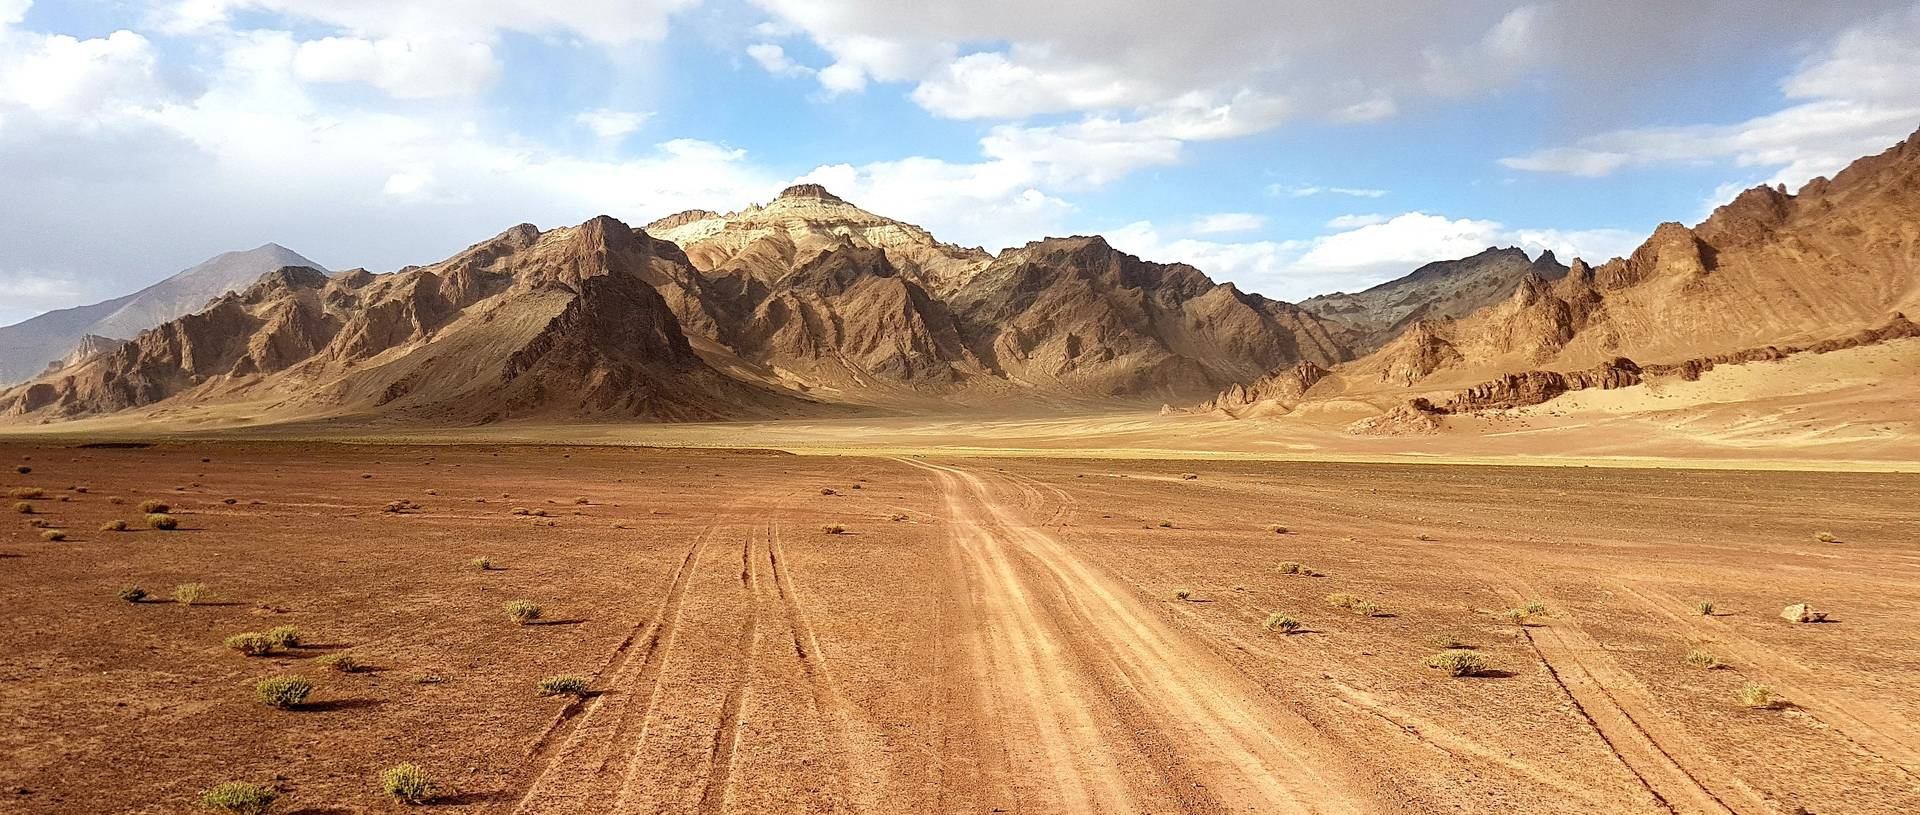 Stunning Views On Pamir Highway, Driving Through Tajikistan